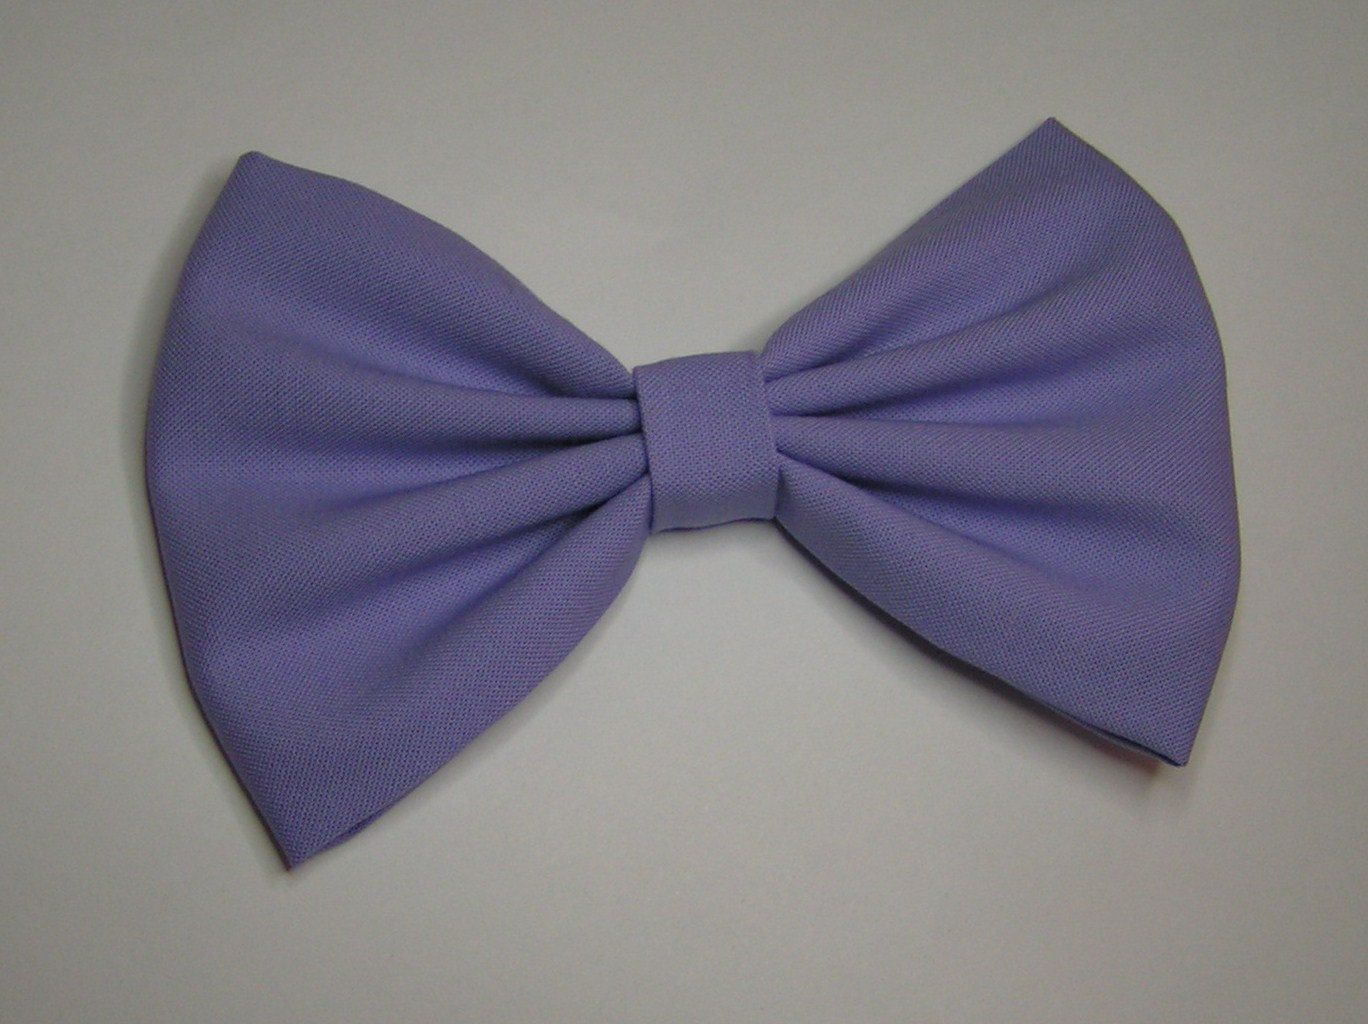 Lavender color Hair Bow, Fabric Hair Bow,Fabric Bow, Bows for Kids, Hair bows. $3.99, via Etsy.